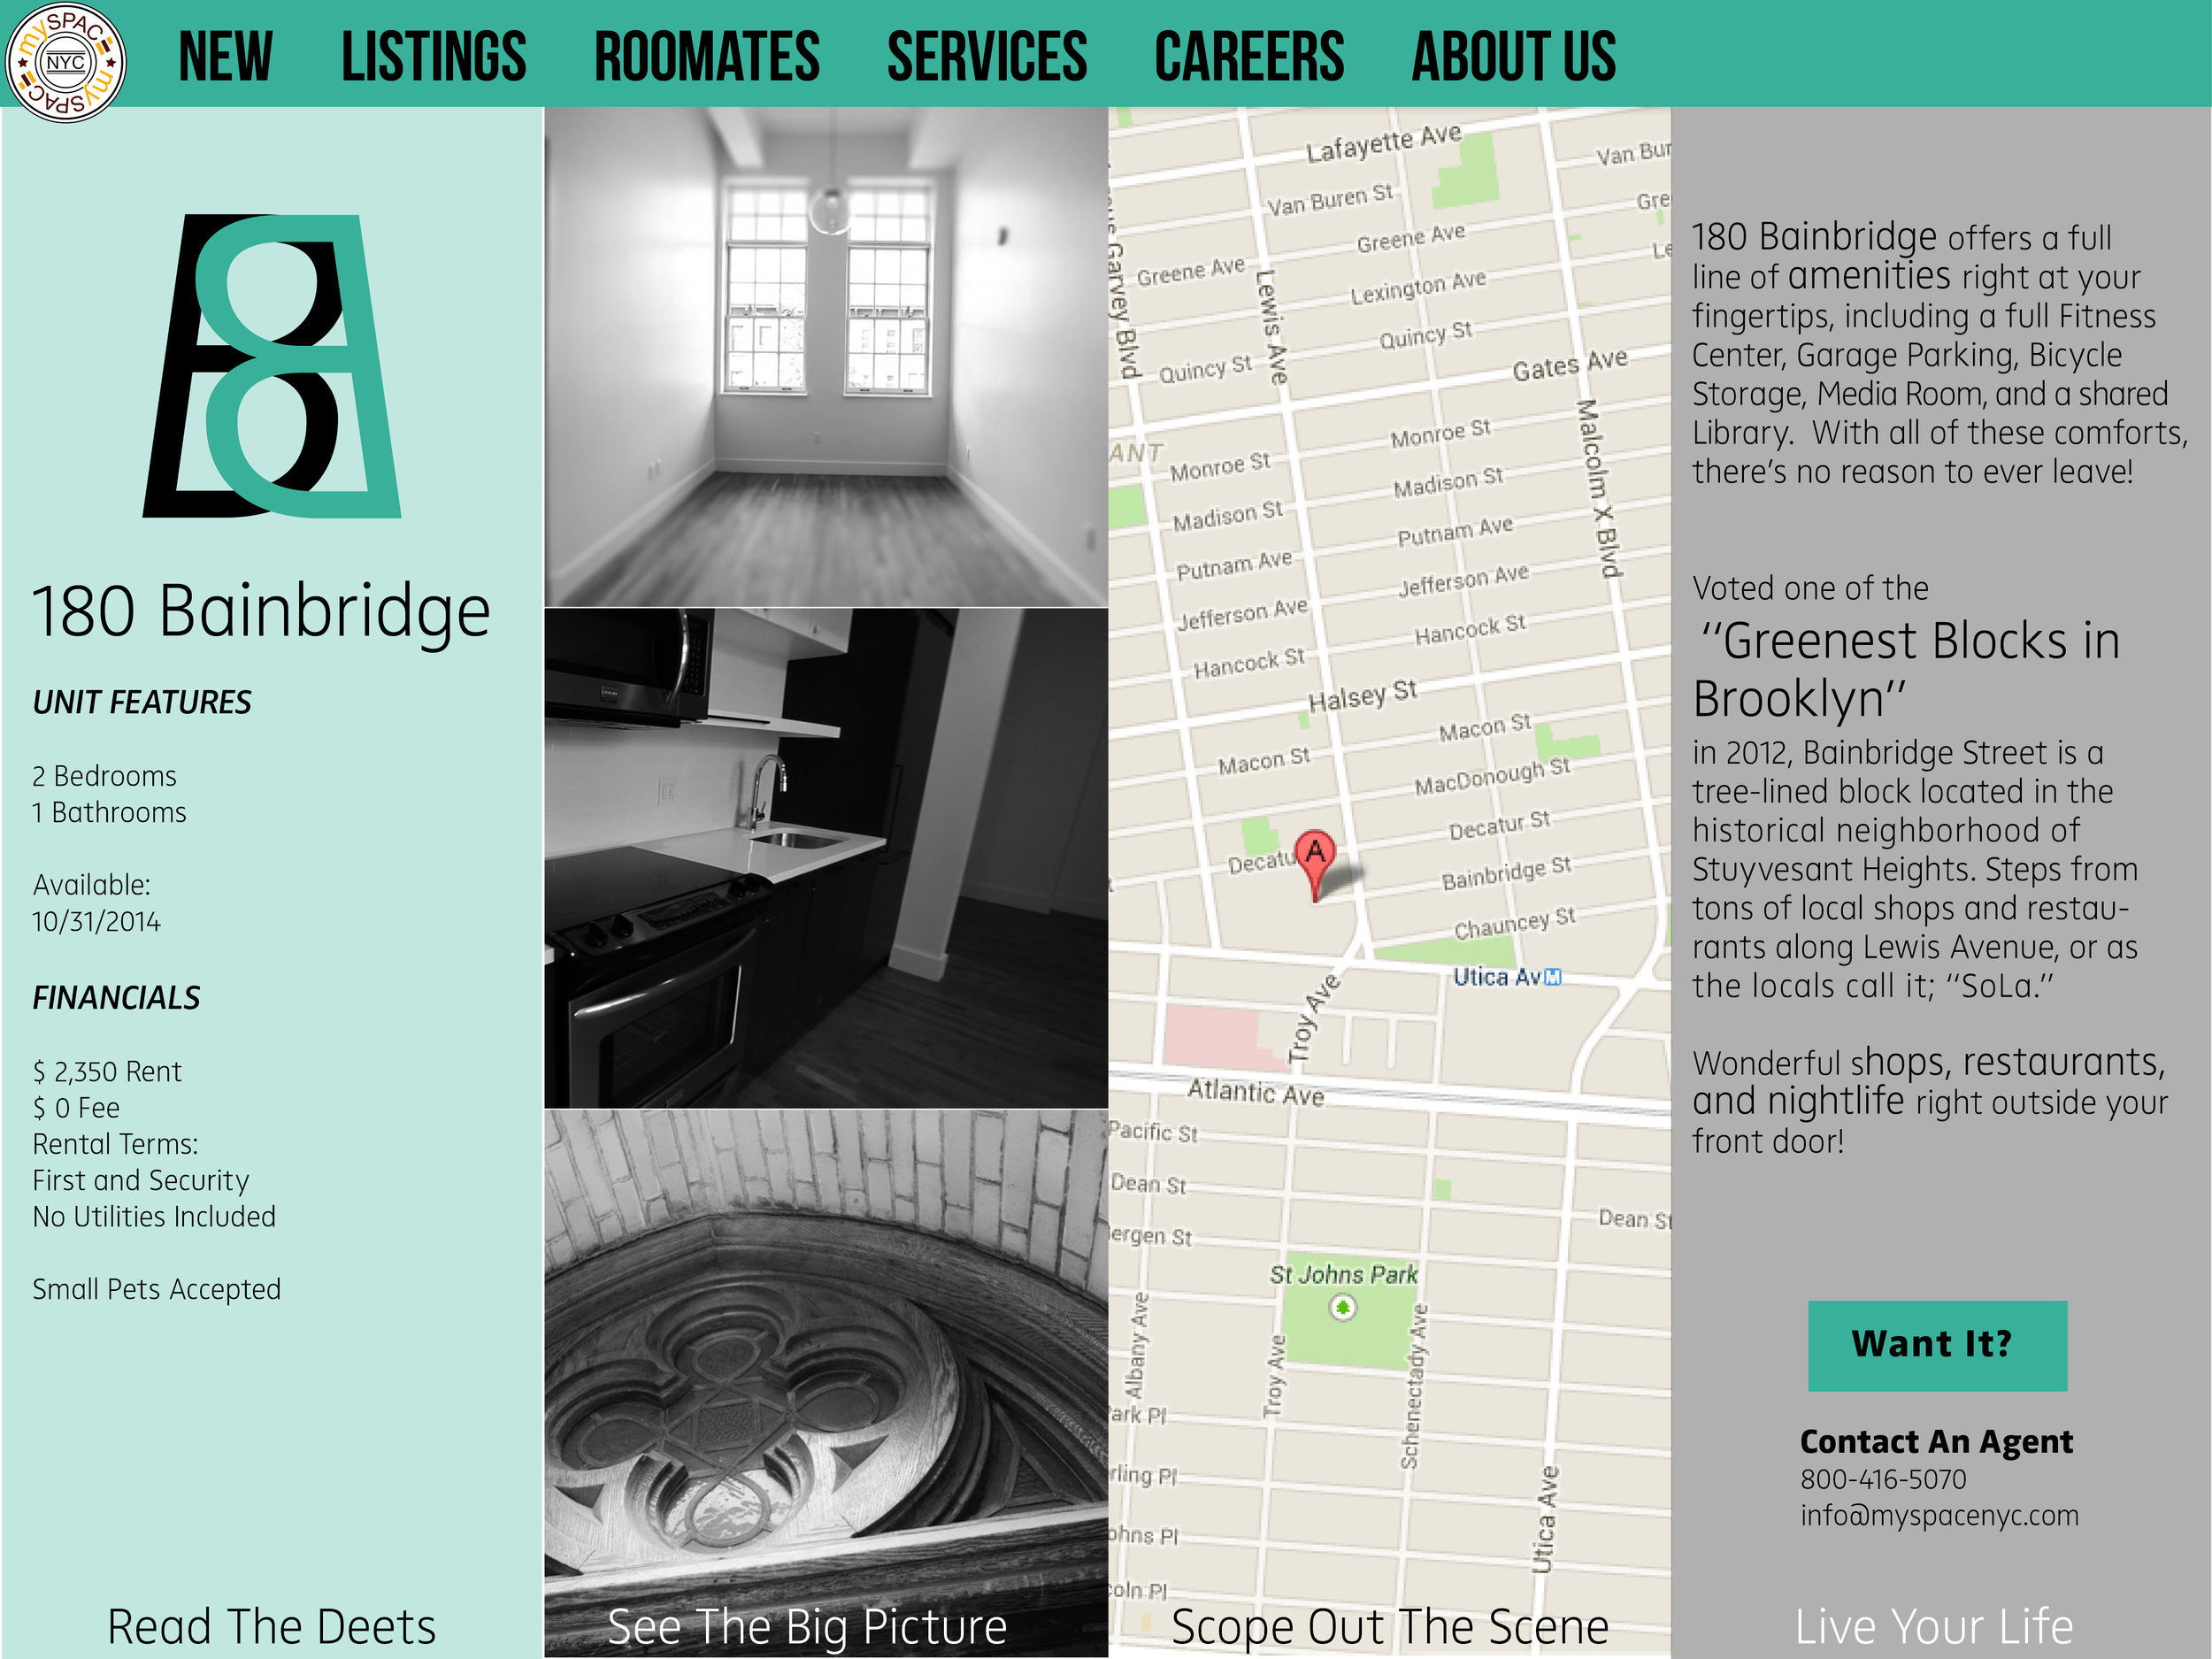 The Microsite for 180 Bainbridge, each property on the realtors website would have a page where an interested buyer would find information, price, pictures and location.